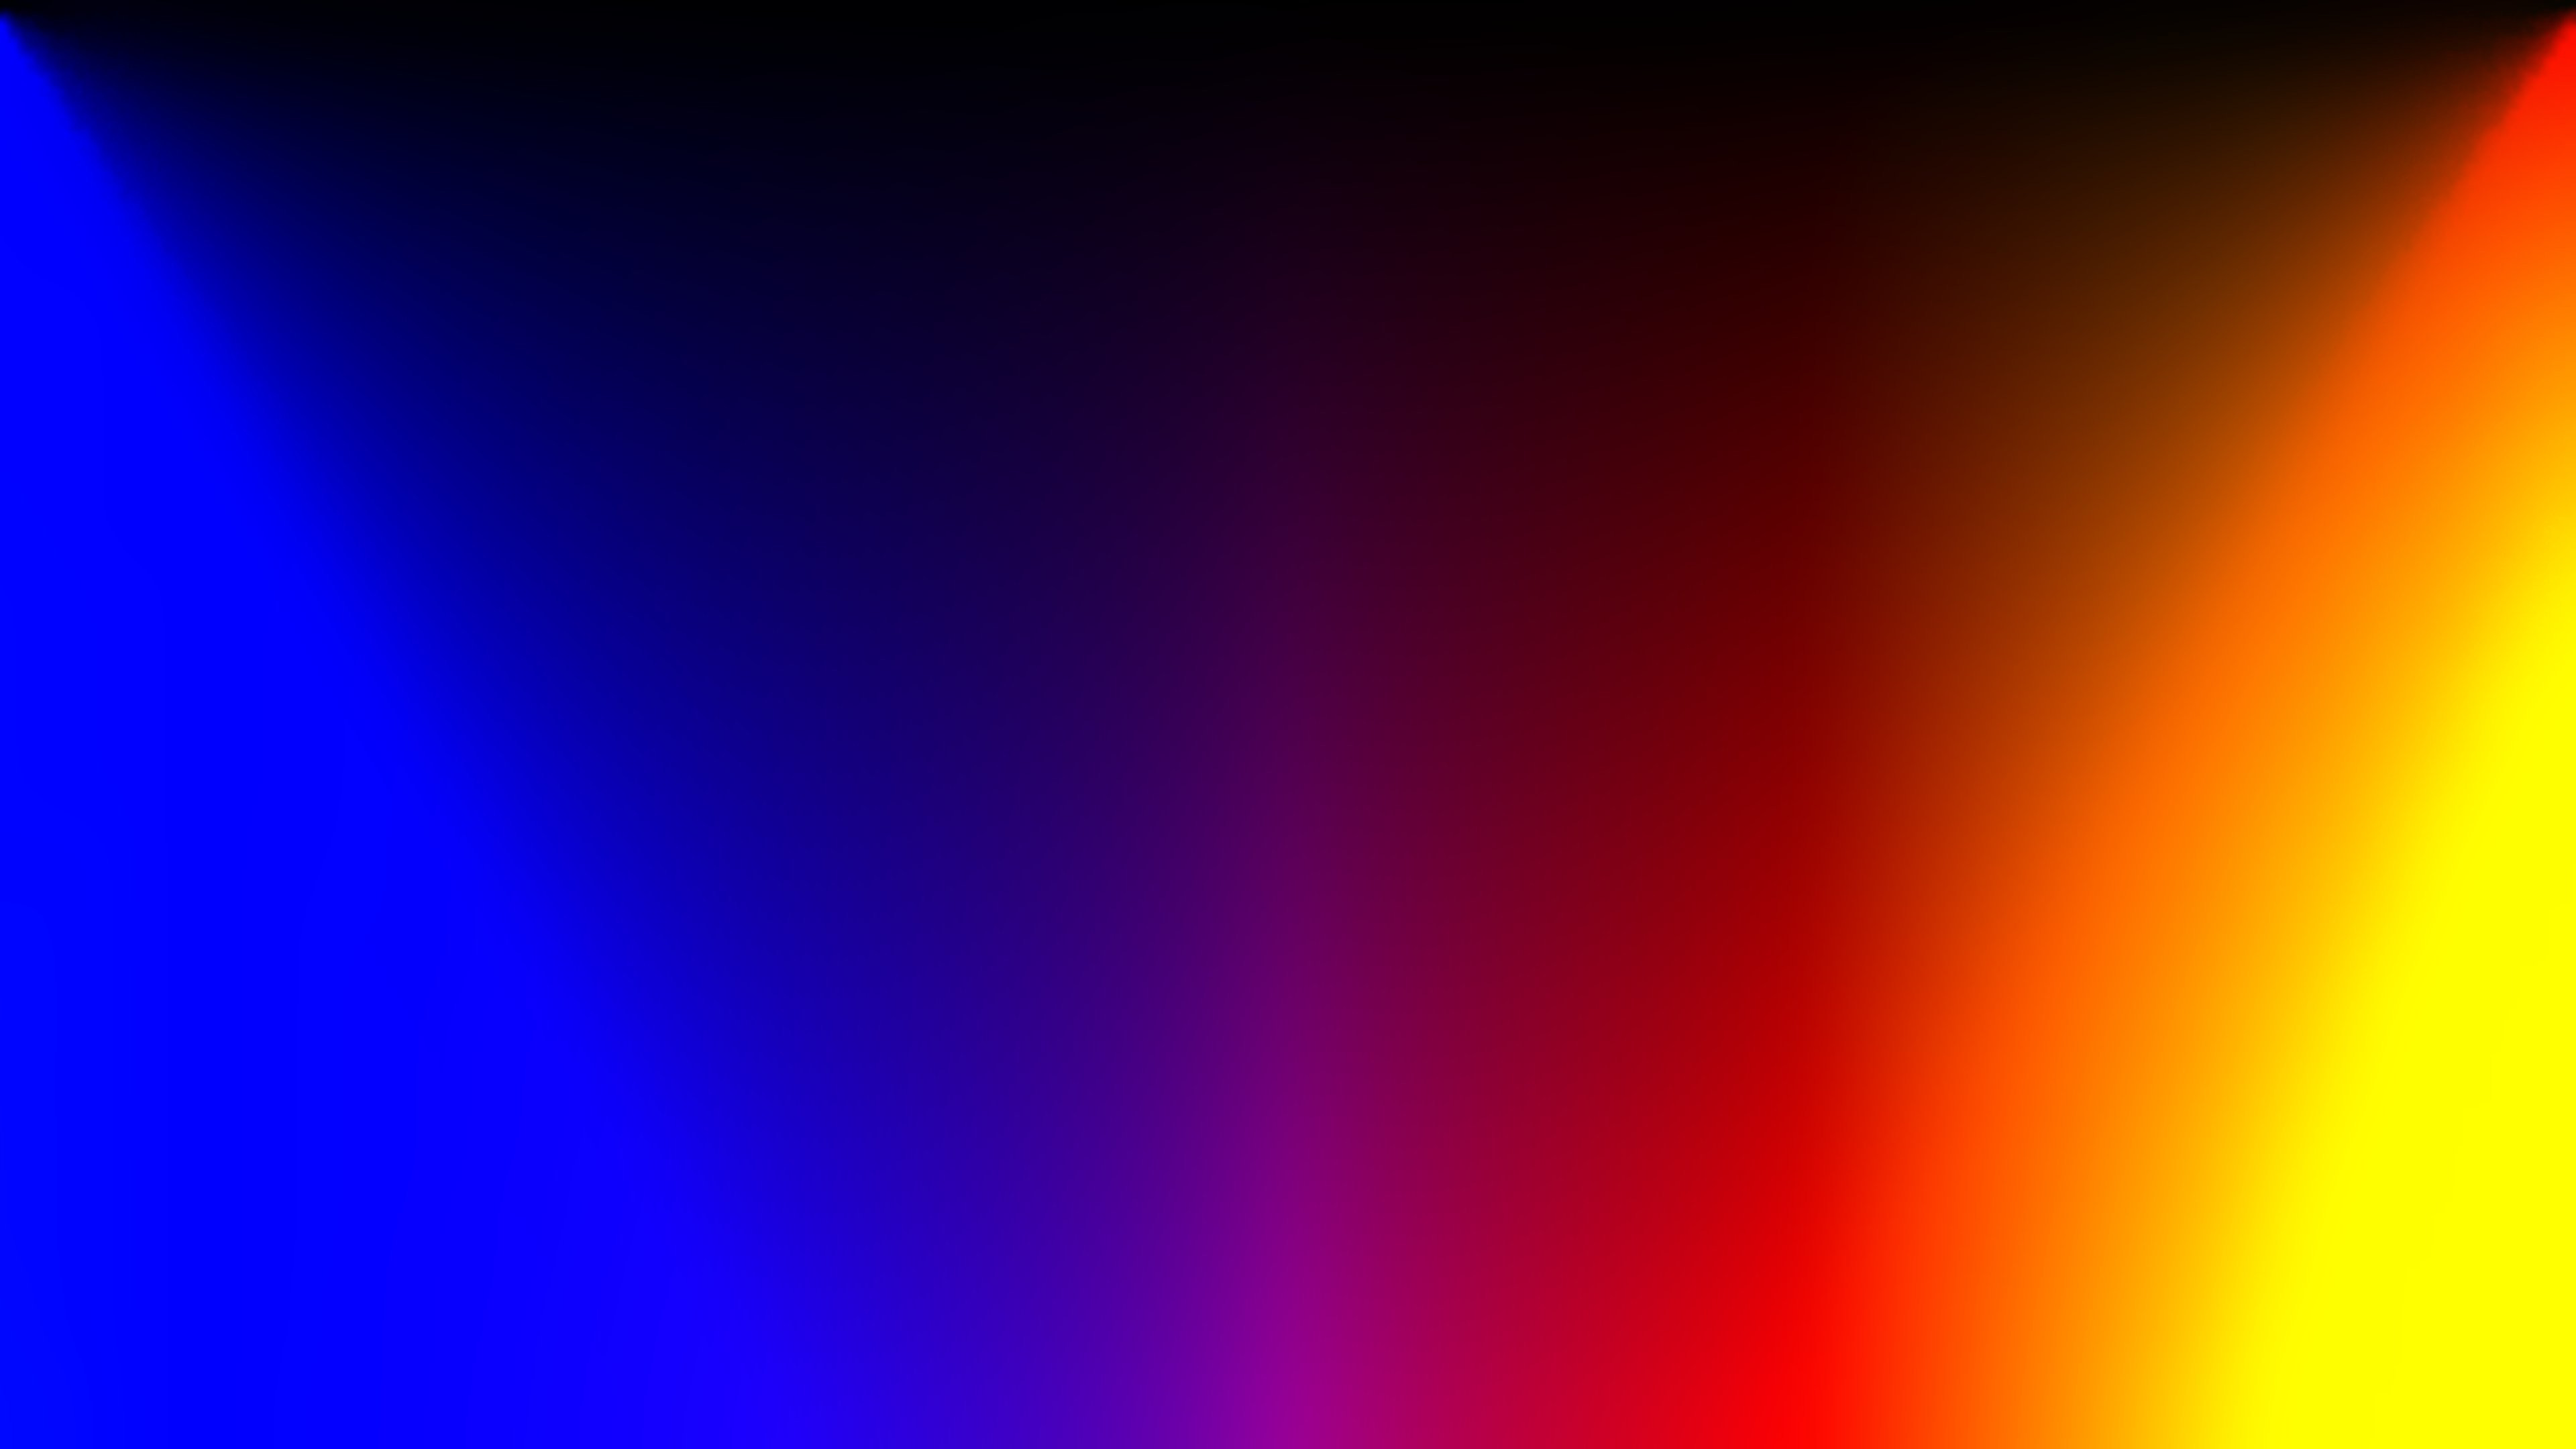 3840x2160 colors colorful abstract blue purple red orange yellow wallpaper